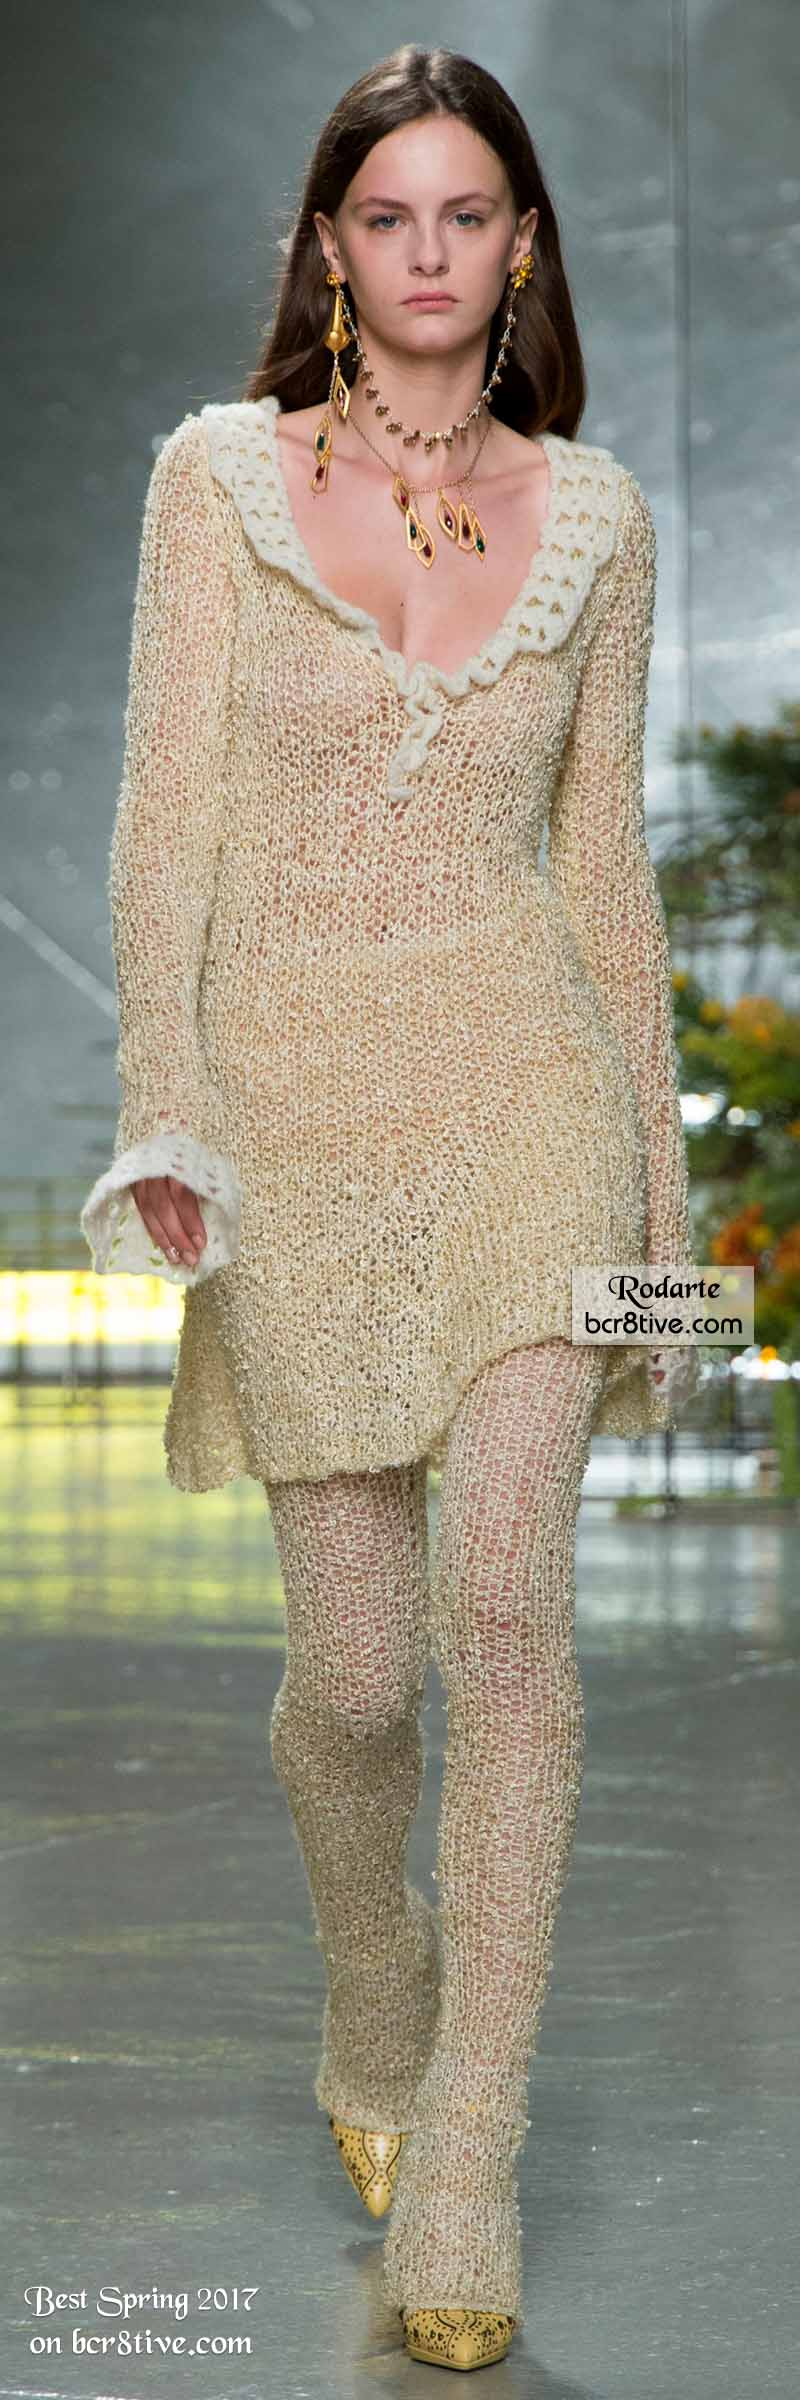 Rodarte - The Best Looks from New York Fashion Week Spring 2017